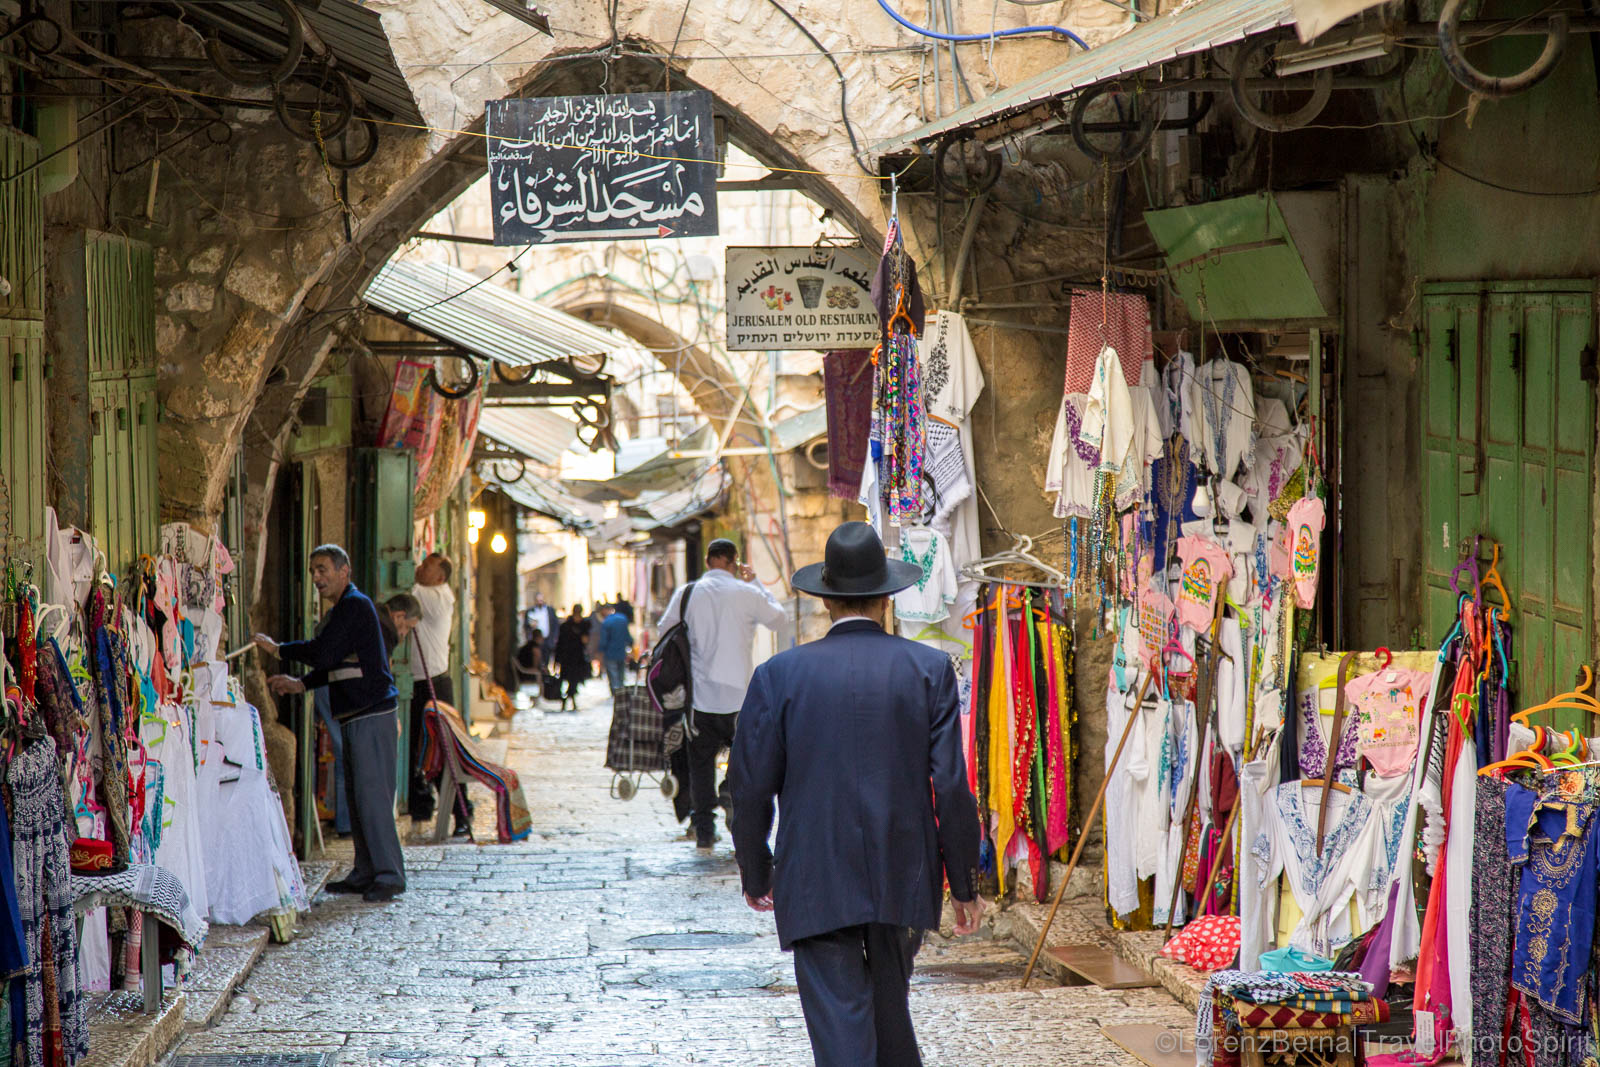 Jewish man walking in the souks of the Muslim Quarter, Jerusalem, Israel.